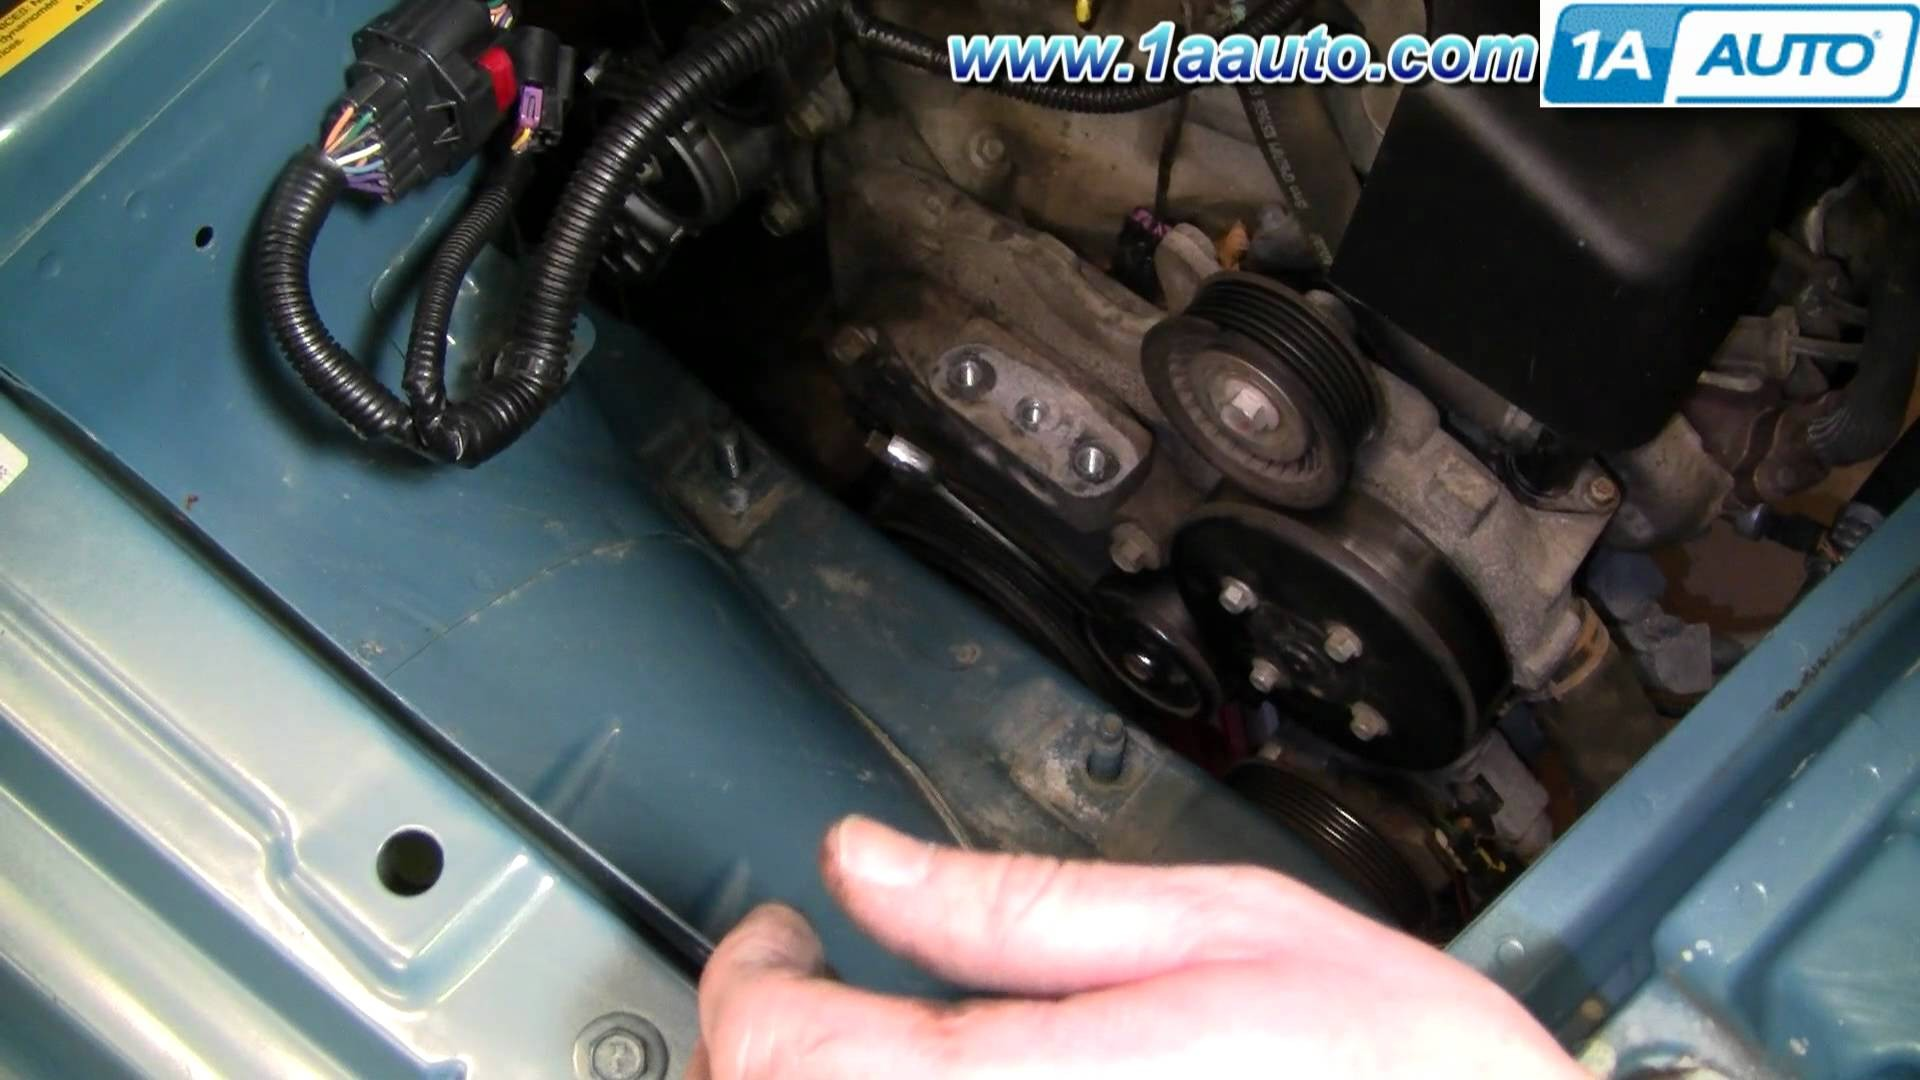 2007 Chevy Equinox Engine Diagram How to Install Replace Serpentine Belt Idler Pulleys Chevy Equinox Of 2007 Chevy Equinox Engine Diagram